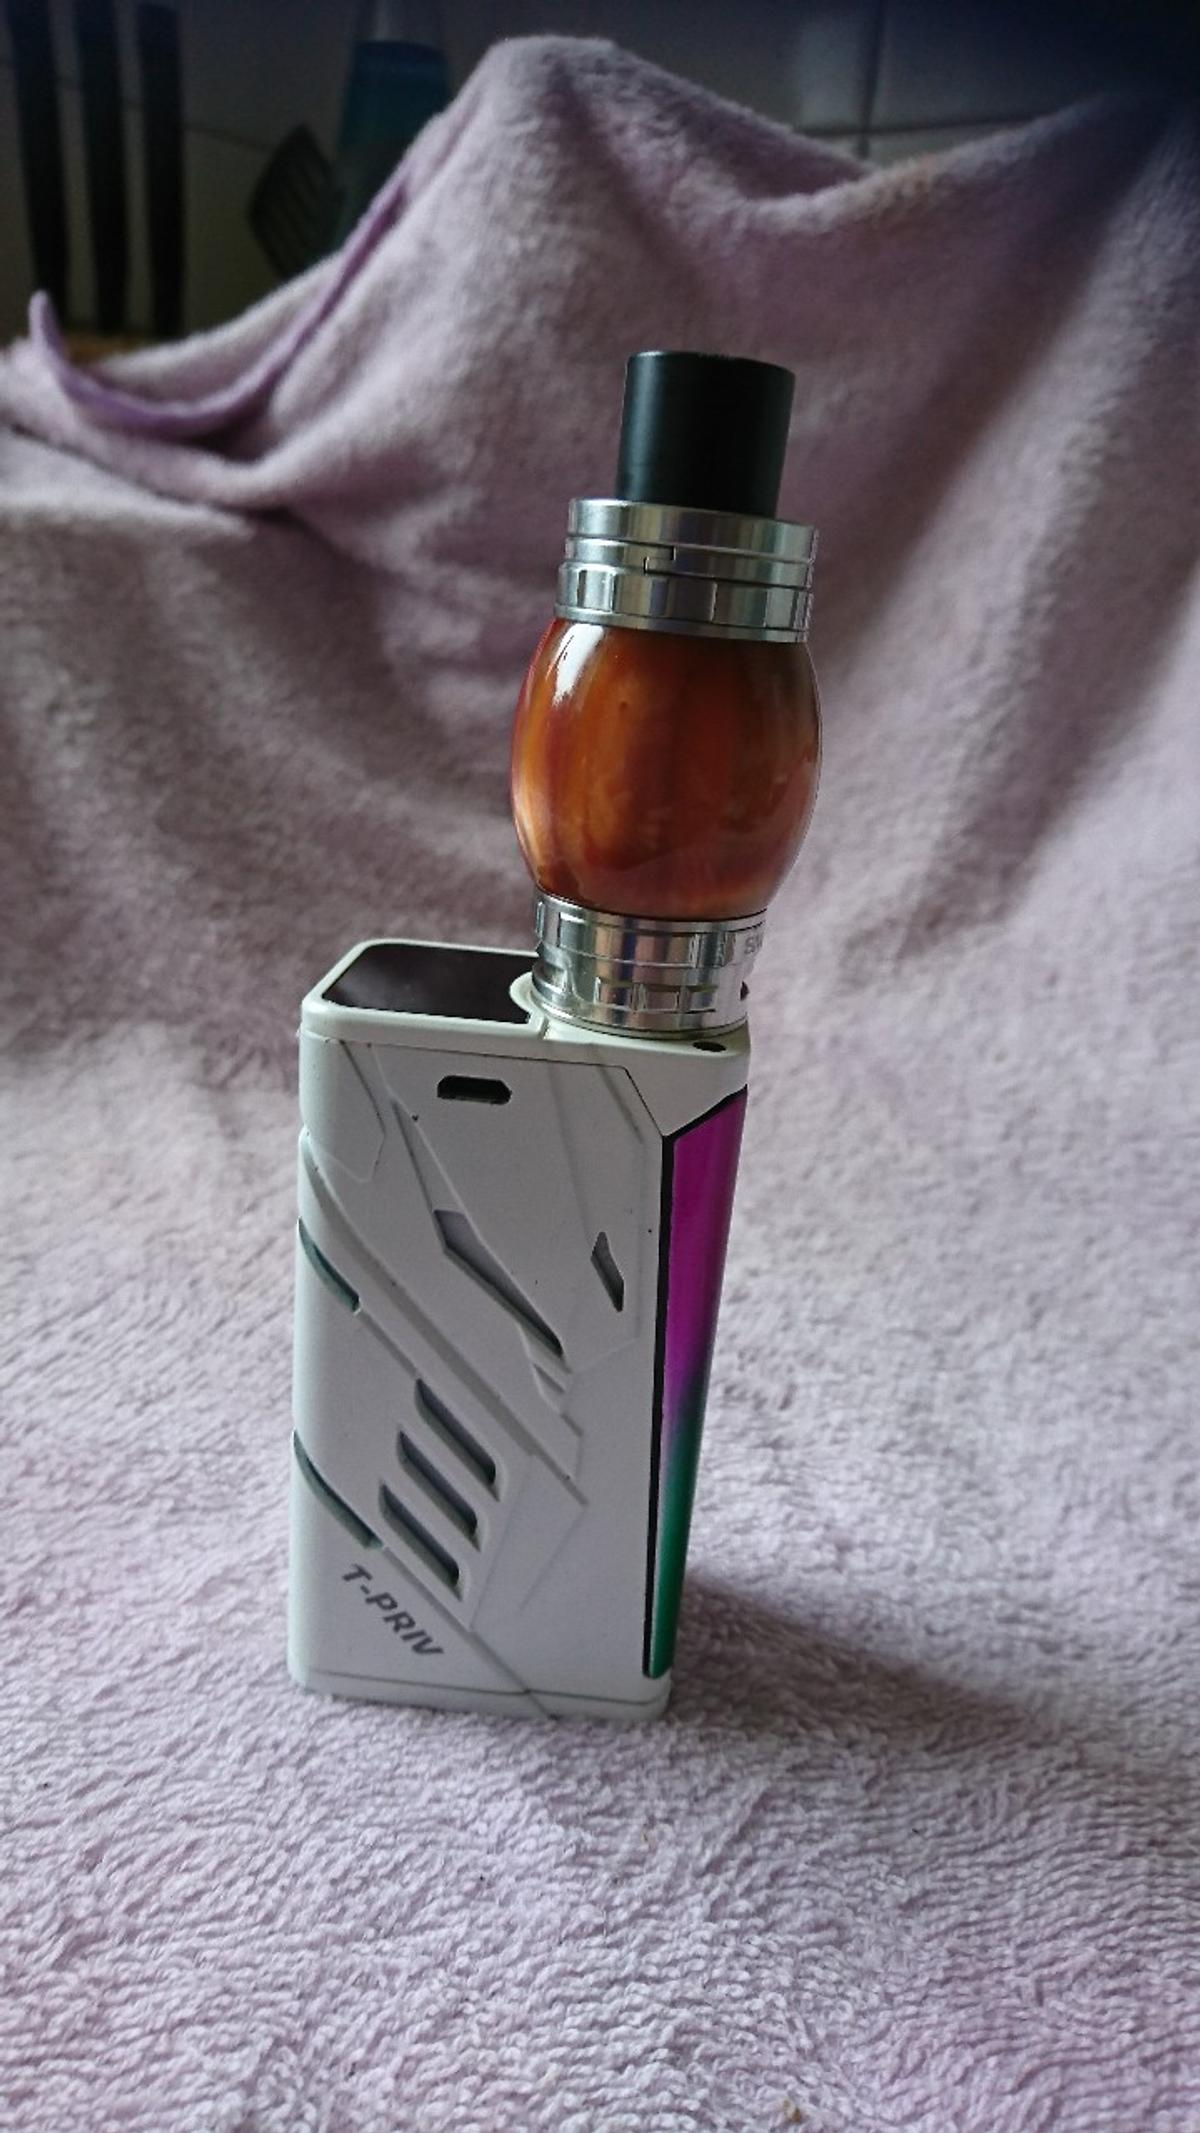 Smok T-Priv vape with Bubble Glass tank in PO9 Havant for